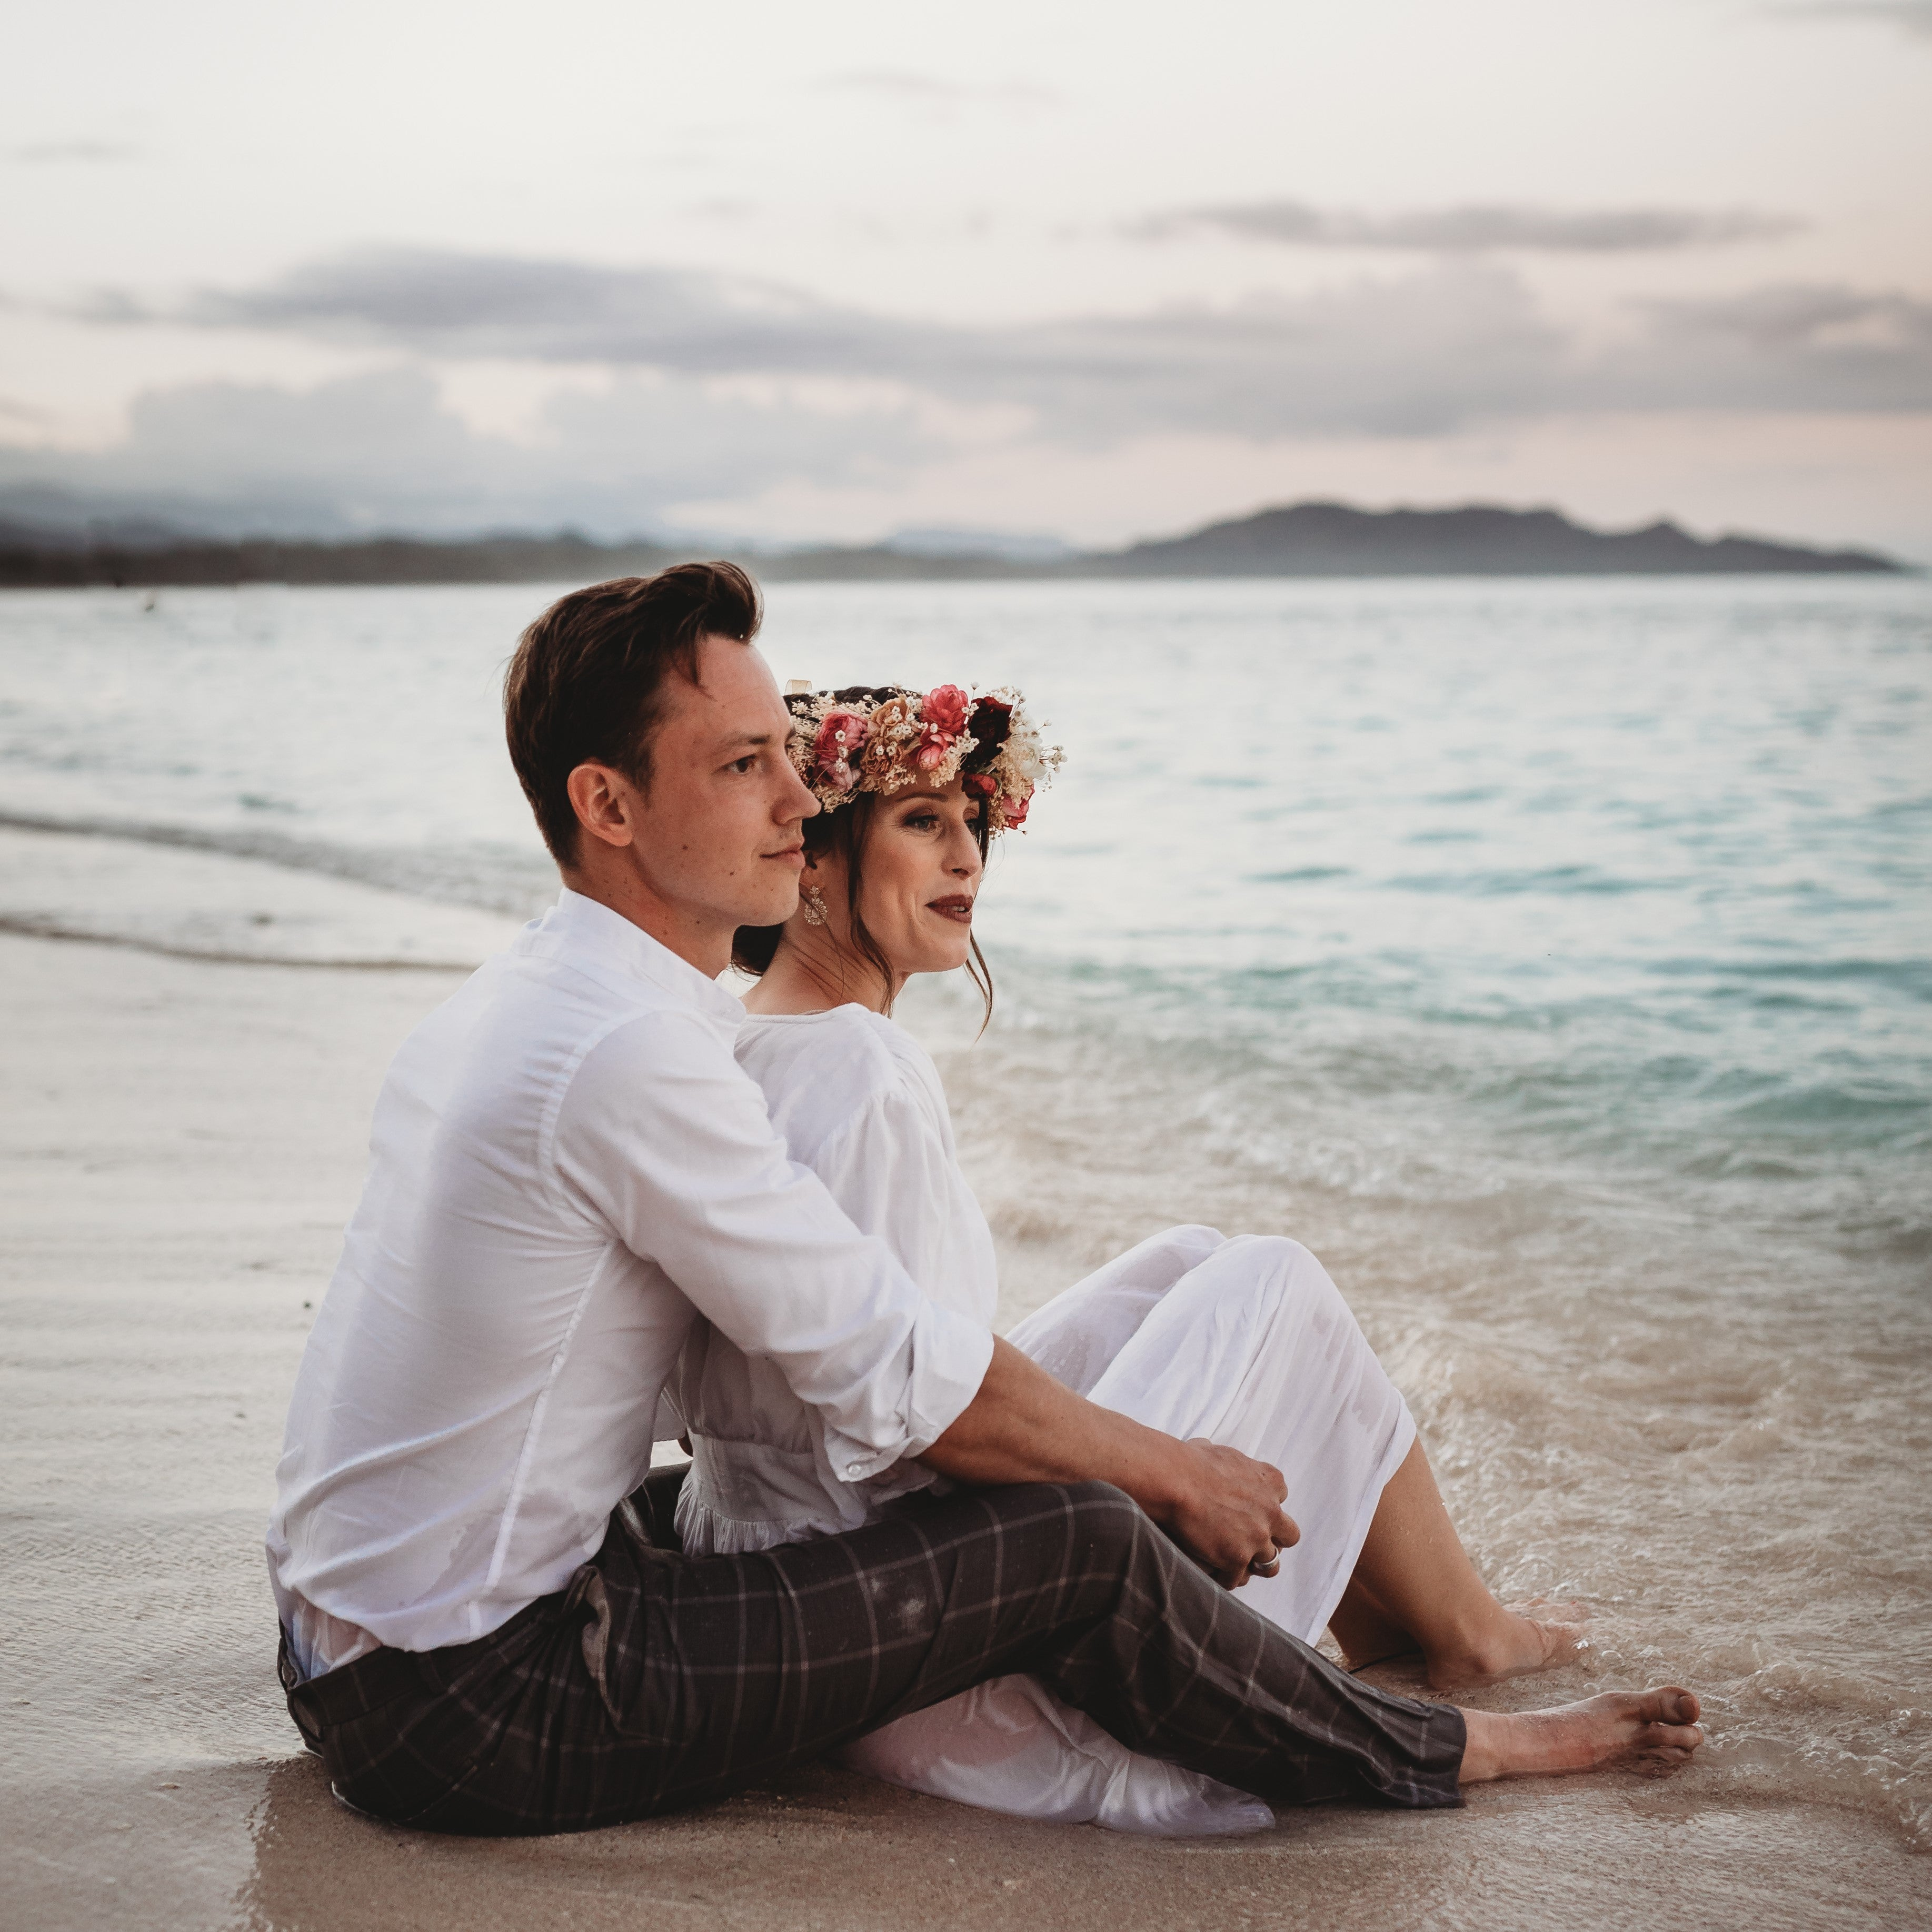 JWLRY CEO Amber Buyse sitting on the beach in Oahu Hawaii with husband Thomas.